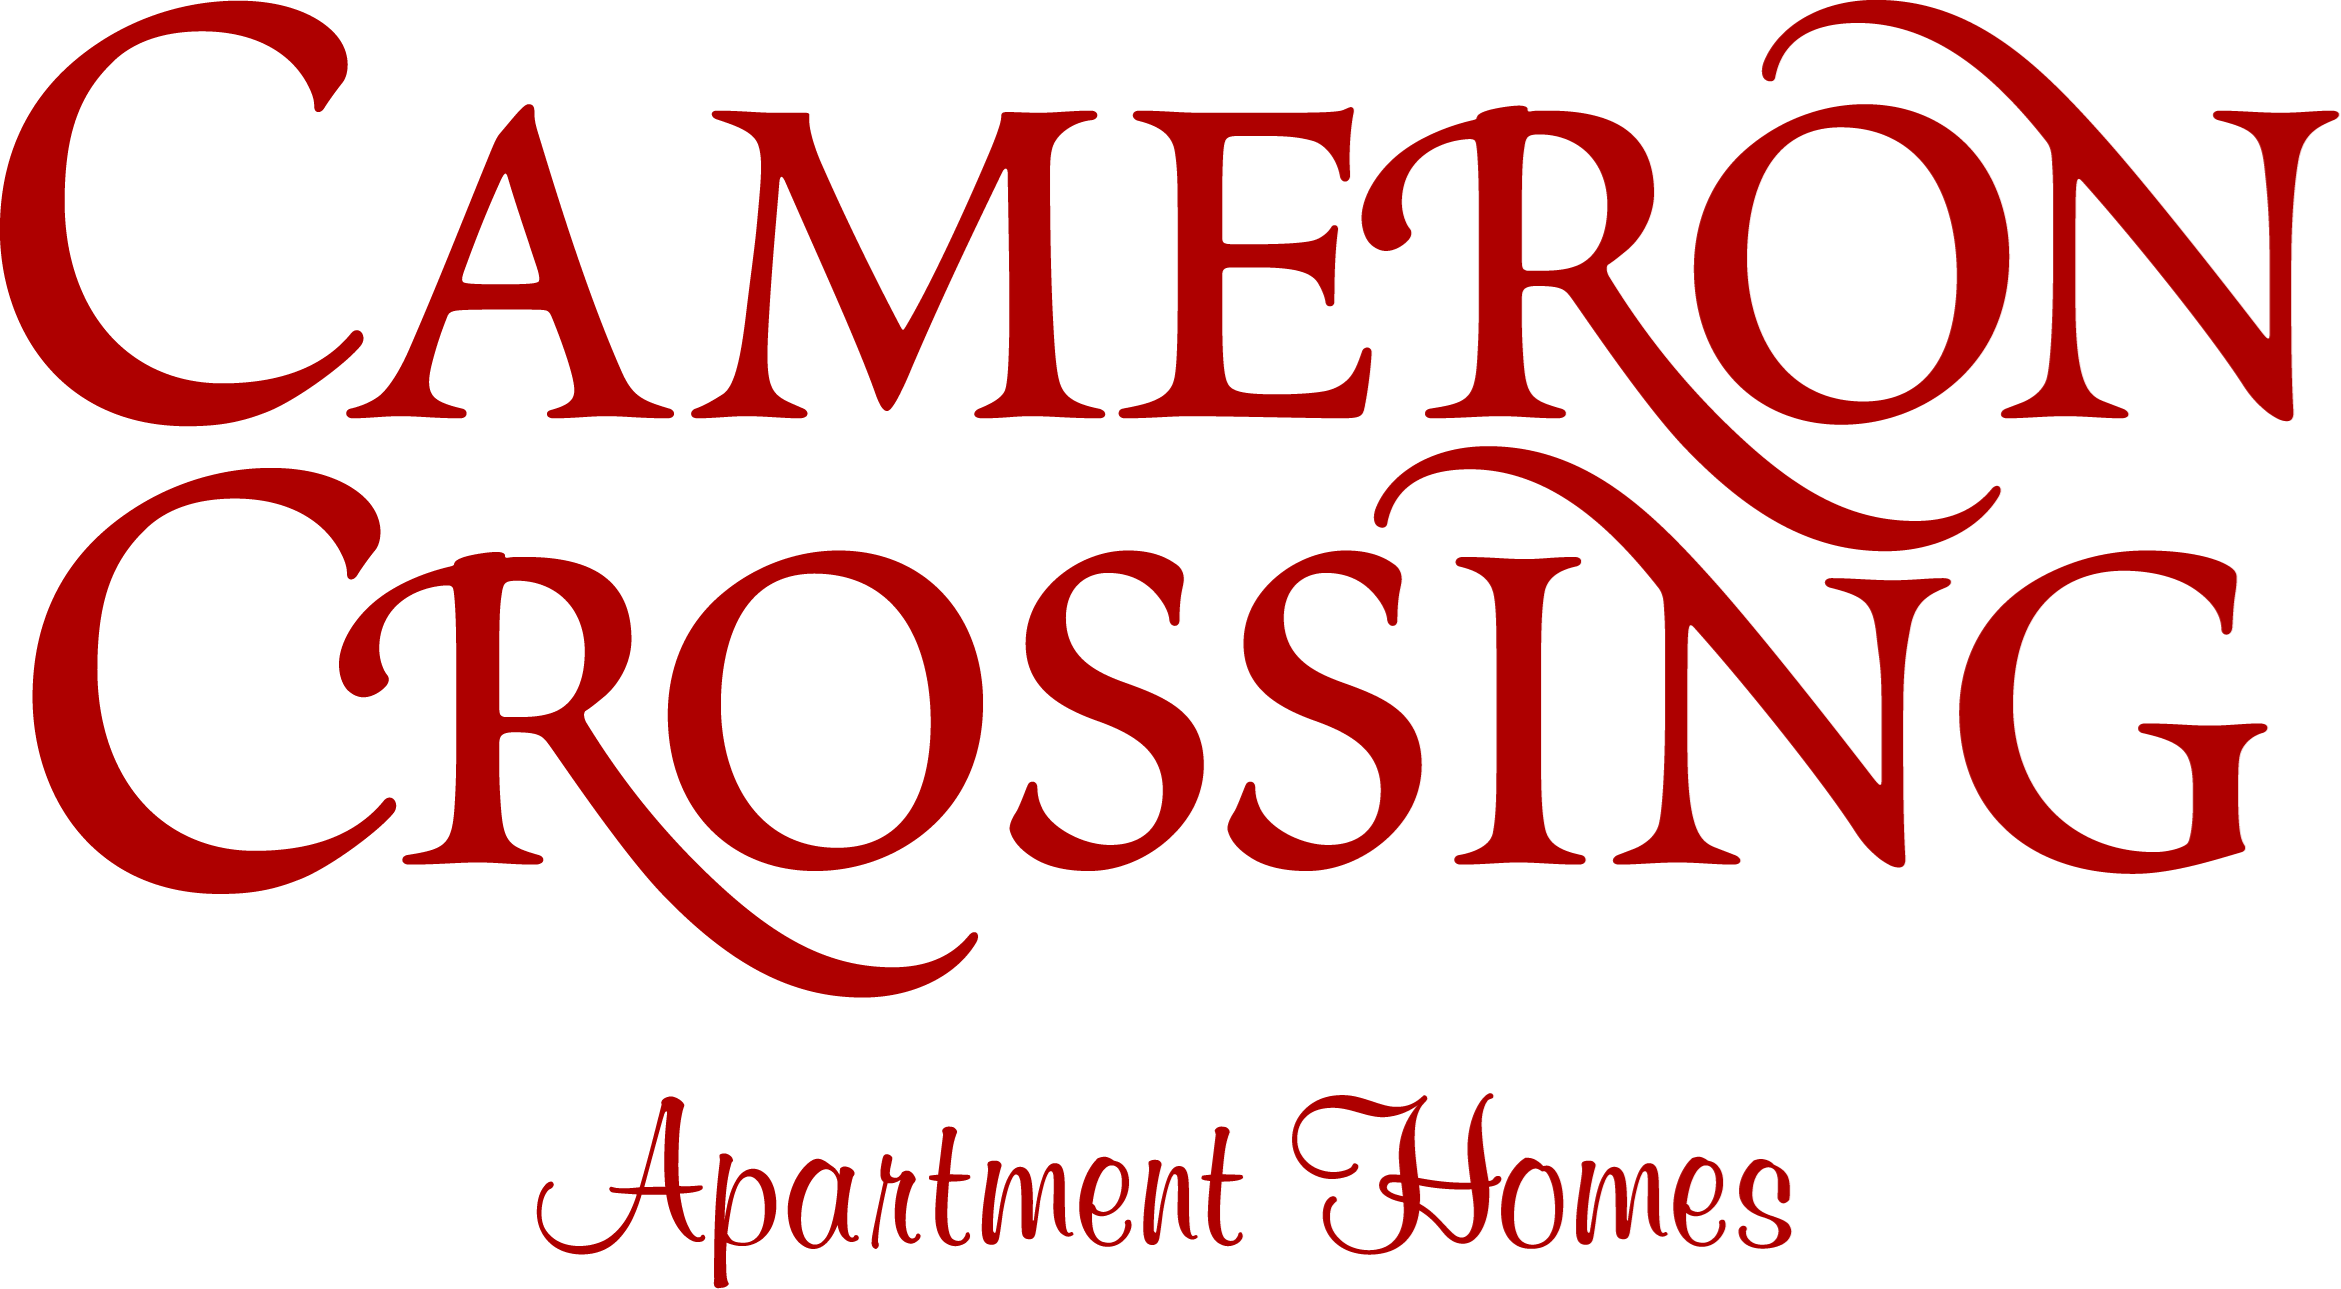 Cameron Crossing Logo